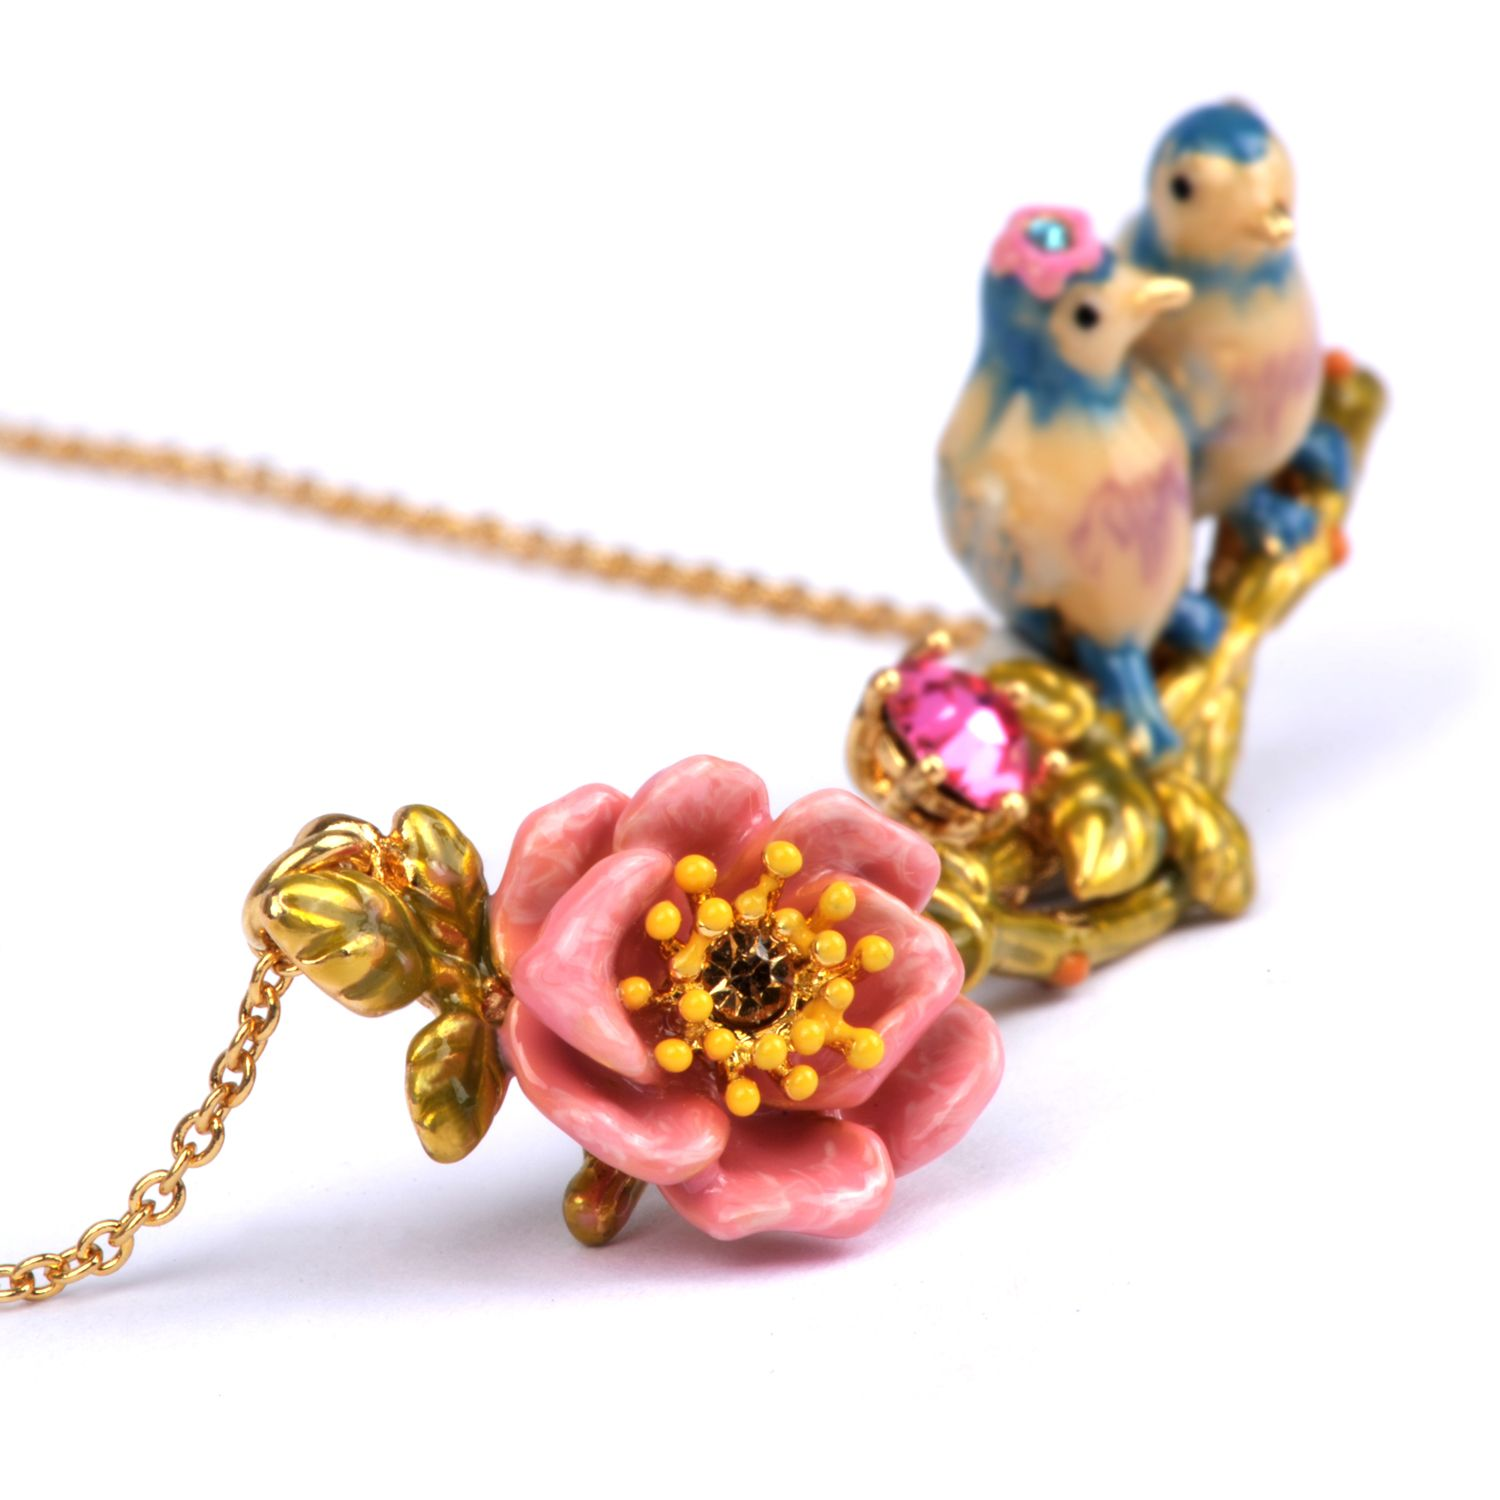 Jardin d amour necklace